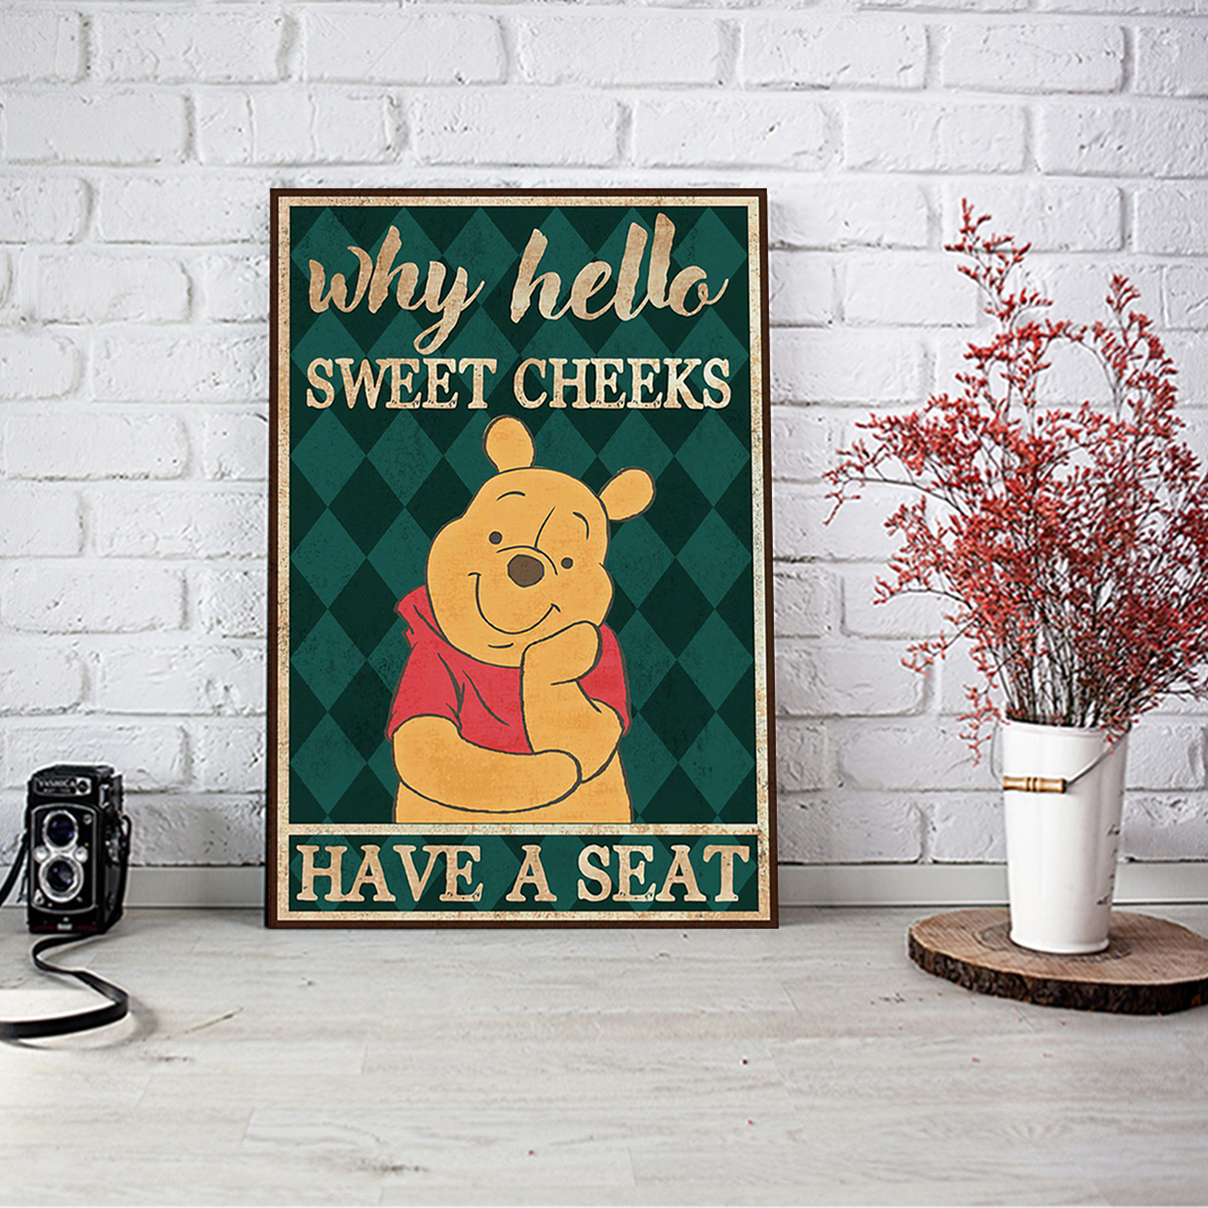 Pooh why hello sweet cheeks have a seat poster A1